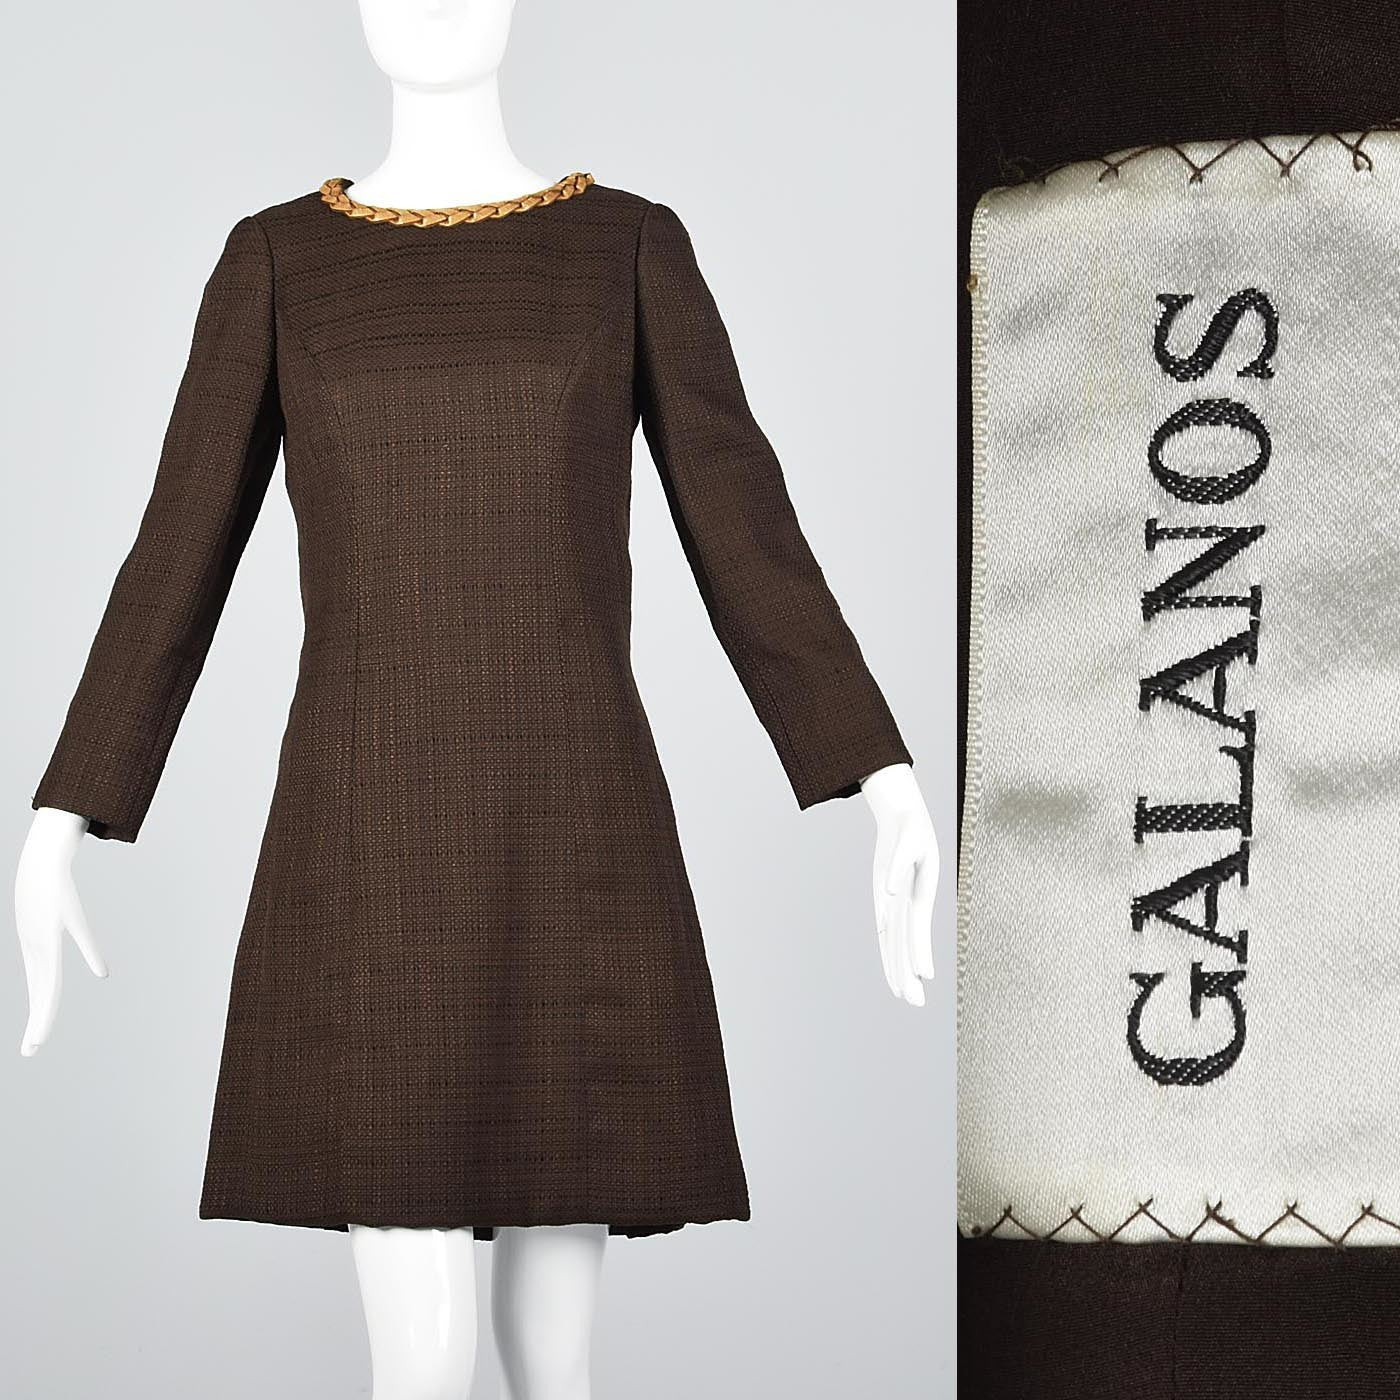 Casual 1960s Galanos Mod Bohemian Shift Dress